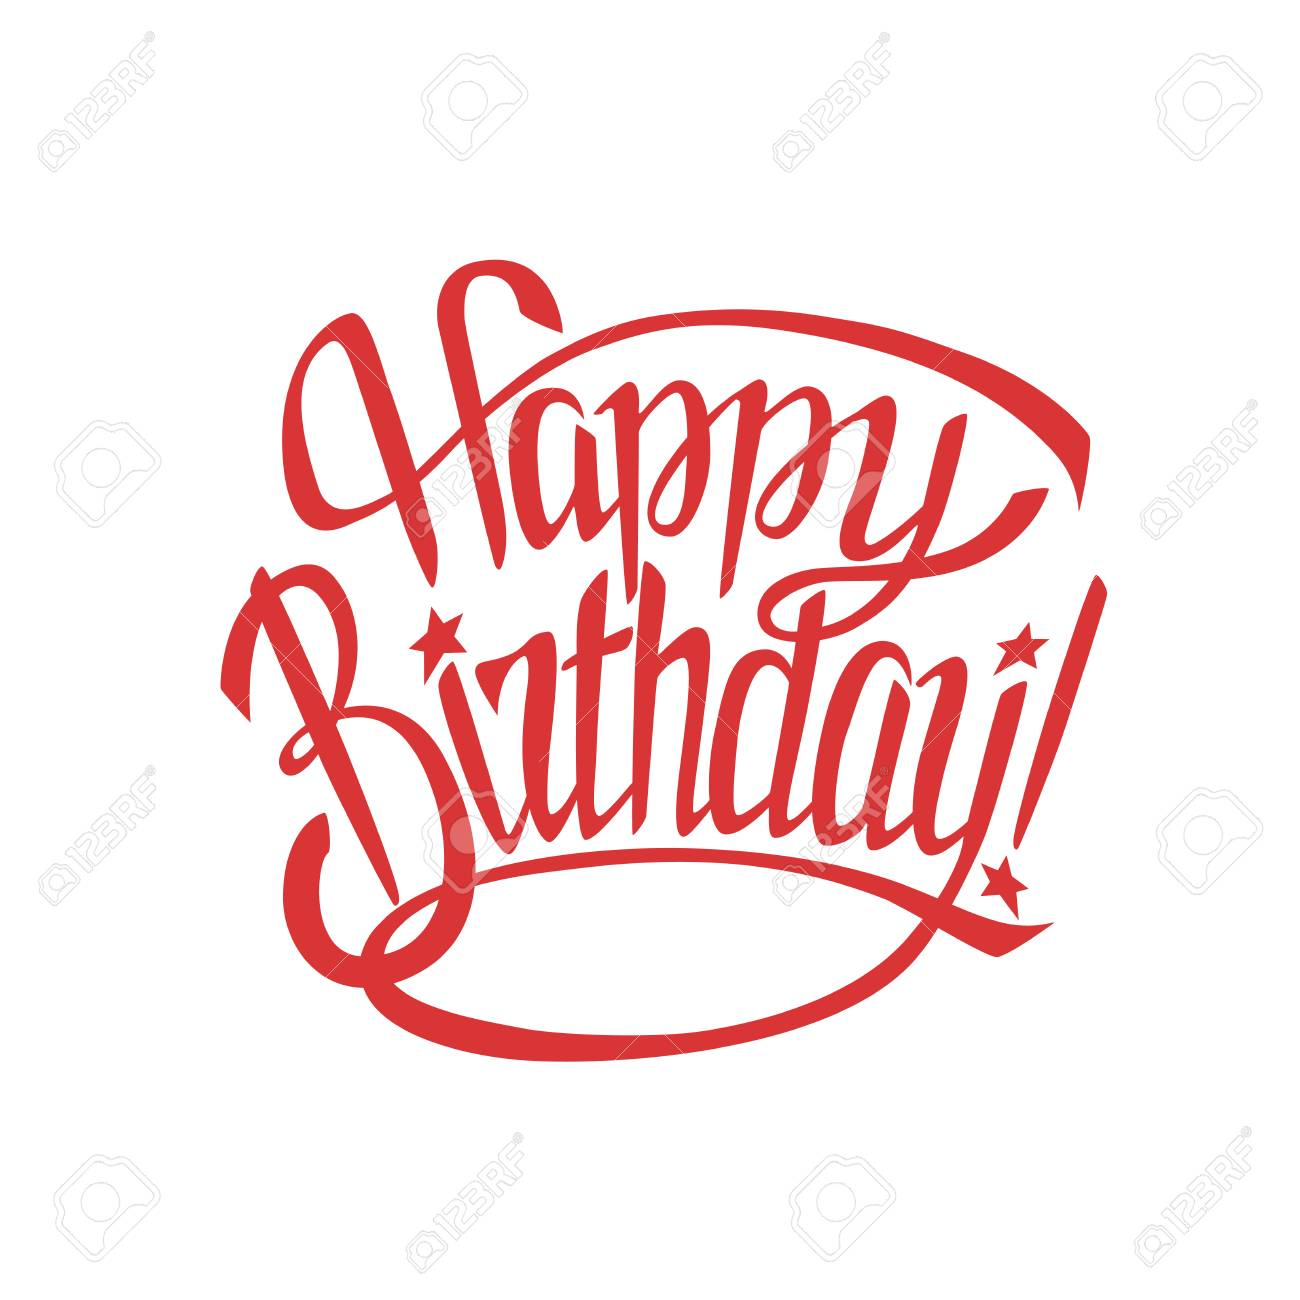 Happy Birthday Greeting Card With Calligraphy On White Background Royalty Free Cliparts Vectors And Stock Illustration Image 88196338